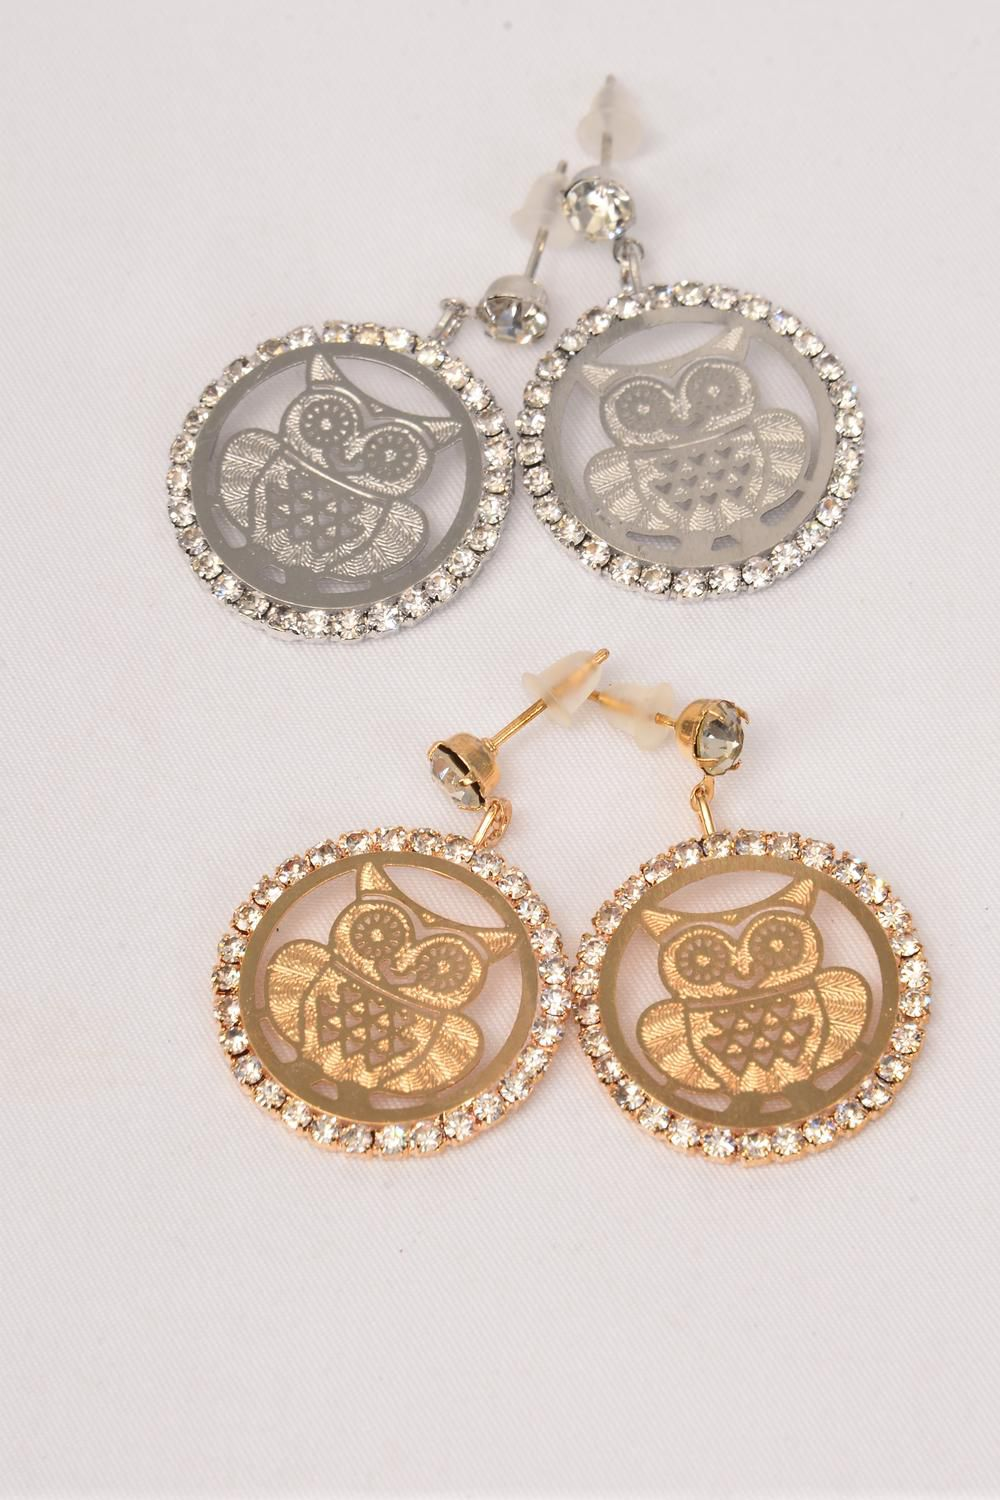 "Earrings Owl Filigree Rhinestones Post/DZ **Post**  Size-1.25""x 1"" Wide,6 Gold & 6 Silver Asst,Earring Card & OPP Bag & UPC Code"